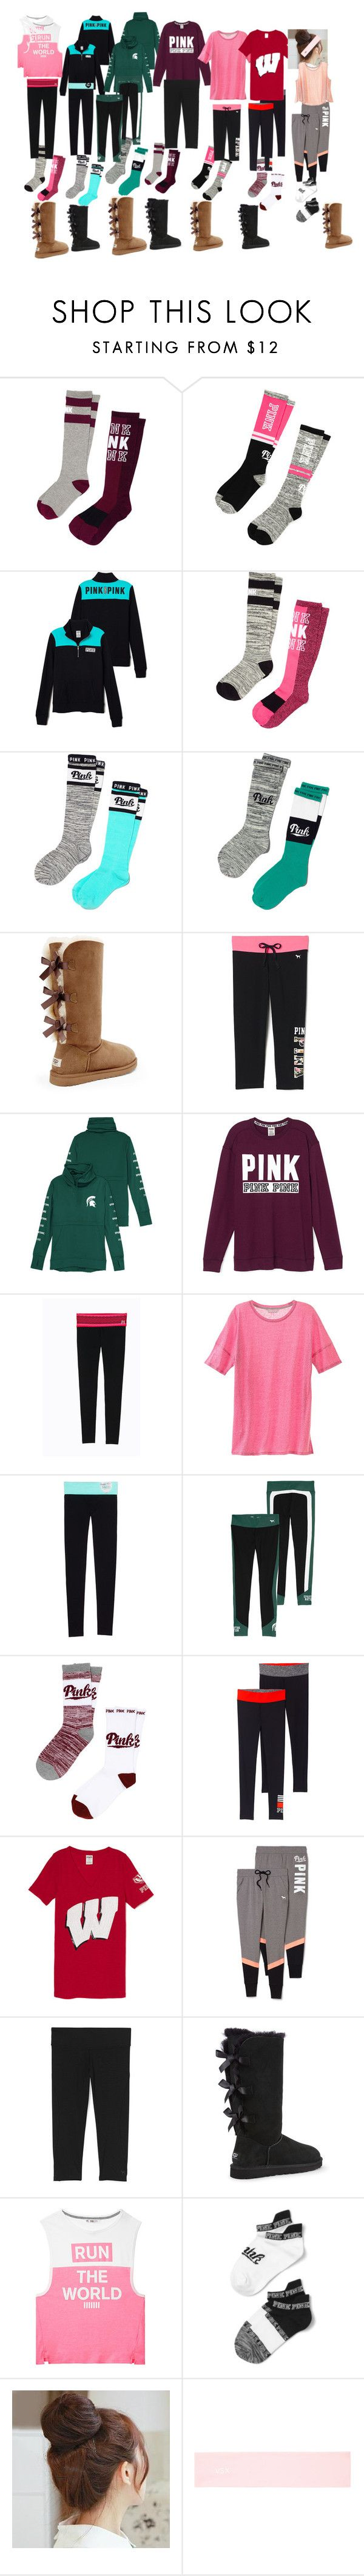 """""""All Pink/Victoria's Secret clothing outfits for school"""" by gingger8 on Polyvore featuring Victoria's Secret PINK, Victoria's Secret, UGG Australia, Pin Show, school, Pink, Victoria and comfy"""